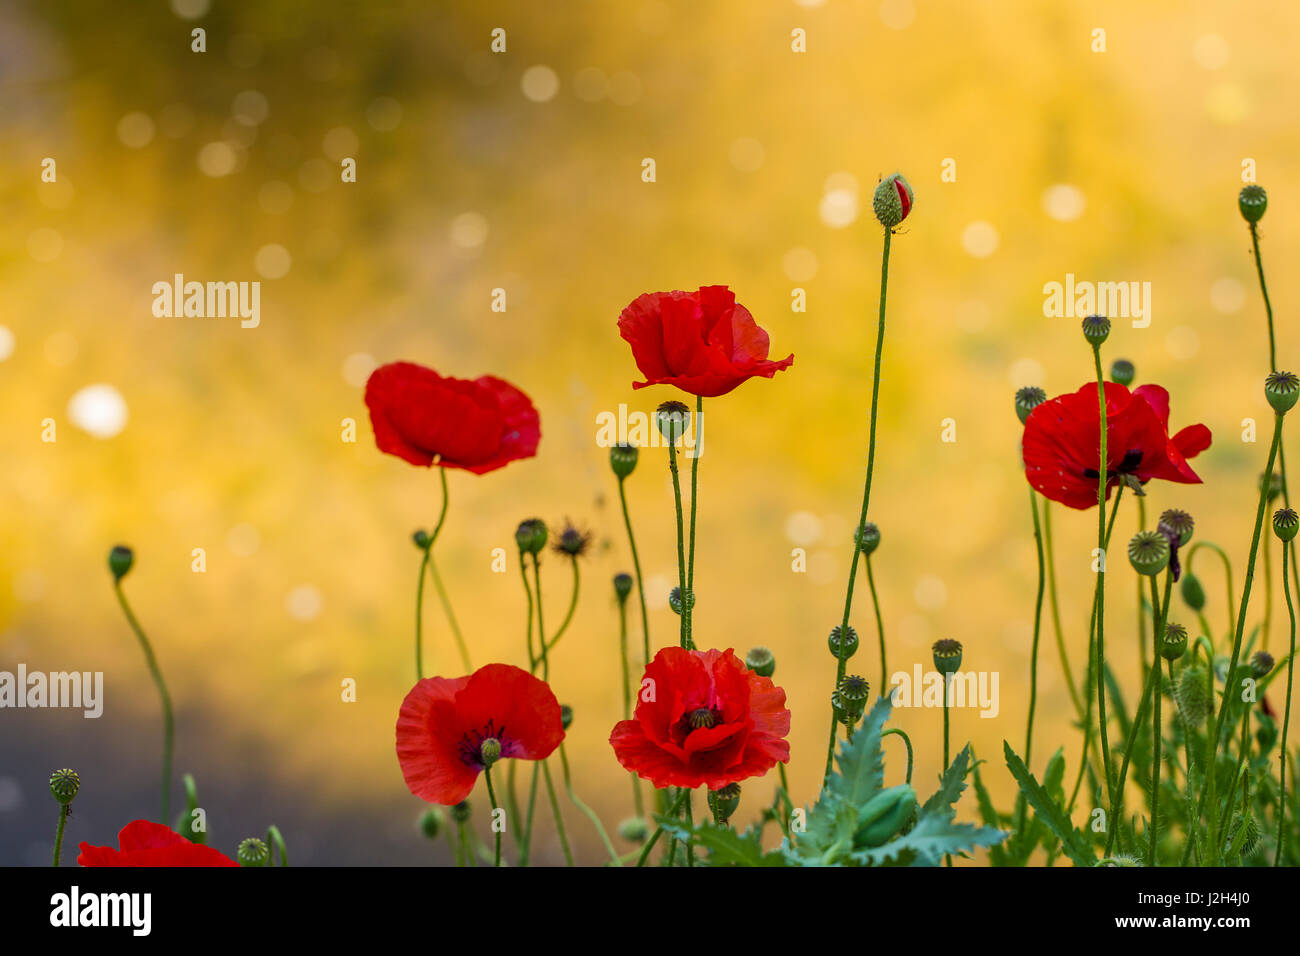 Red poppy flowers for anzac day stock photo 139289080 alamy red poppy flowers for anzac day mightylinksfo